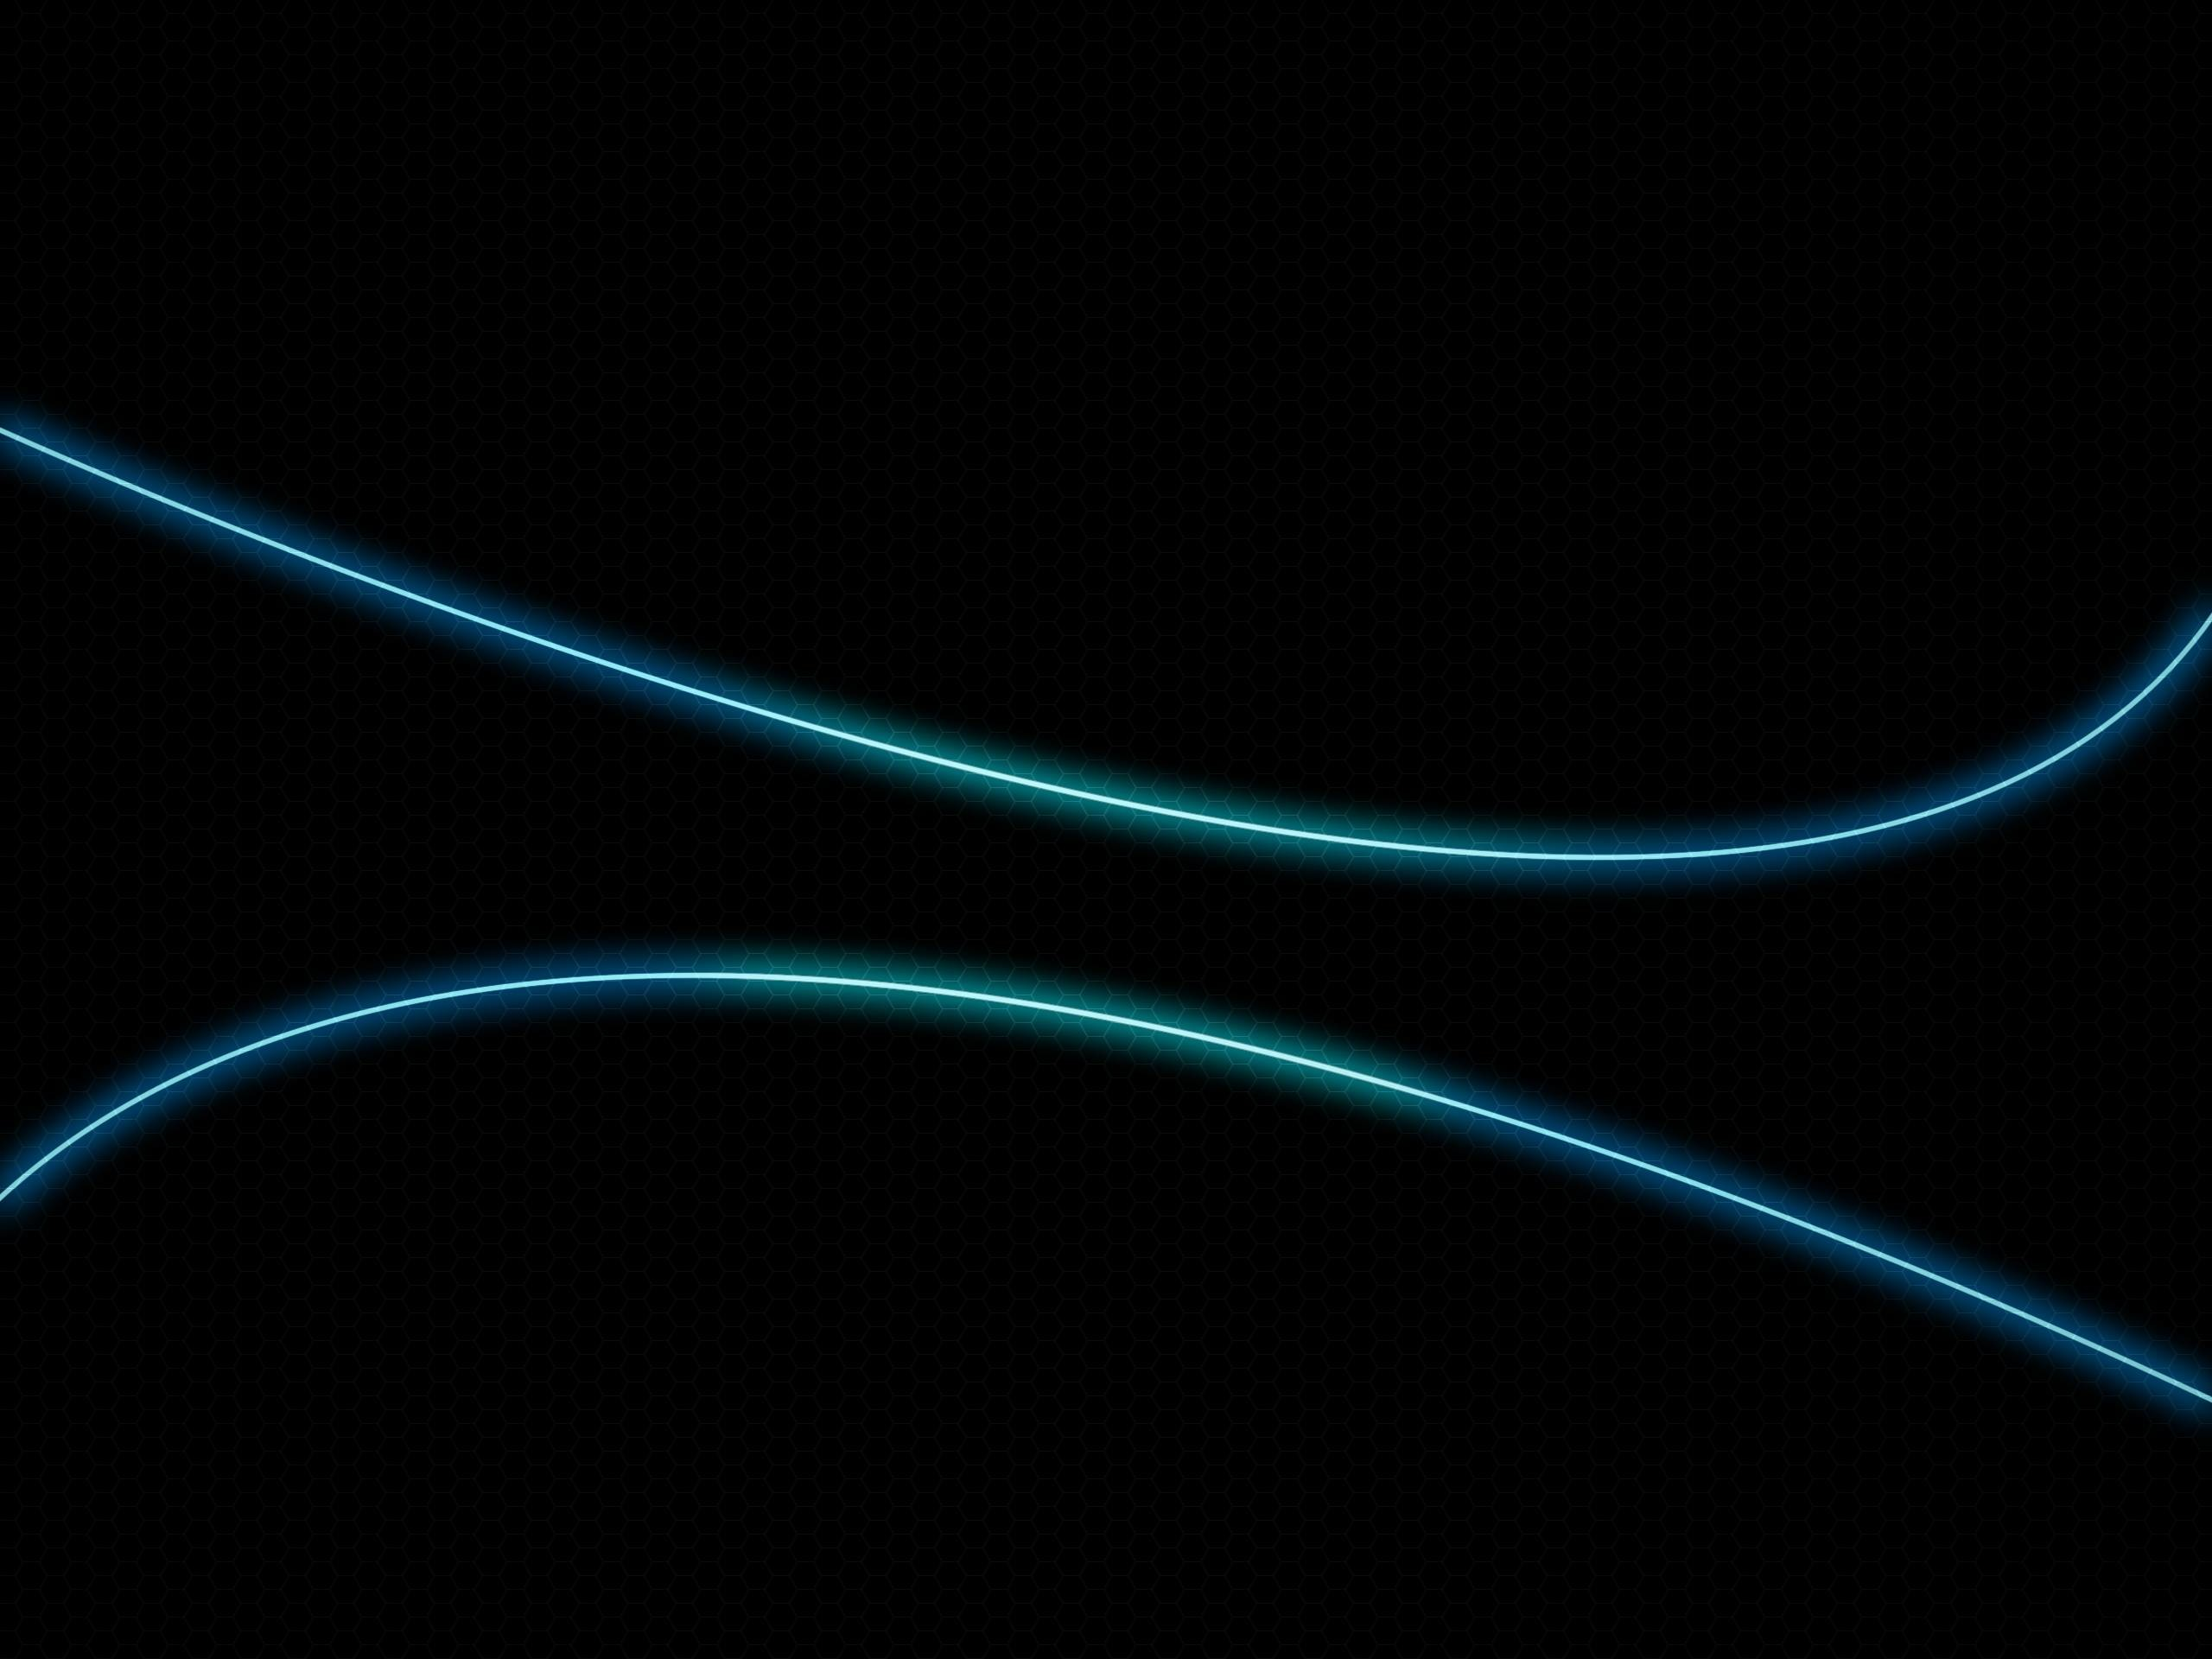 Neon Blue Wallpapers (81+ images)